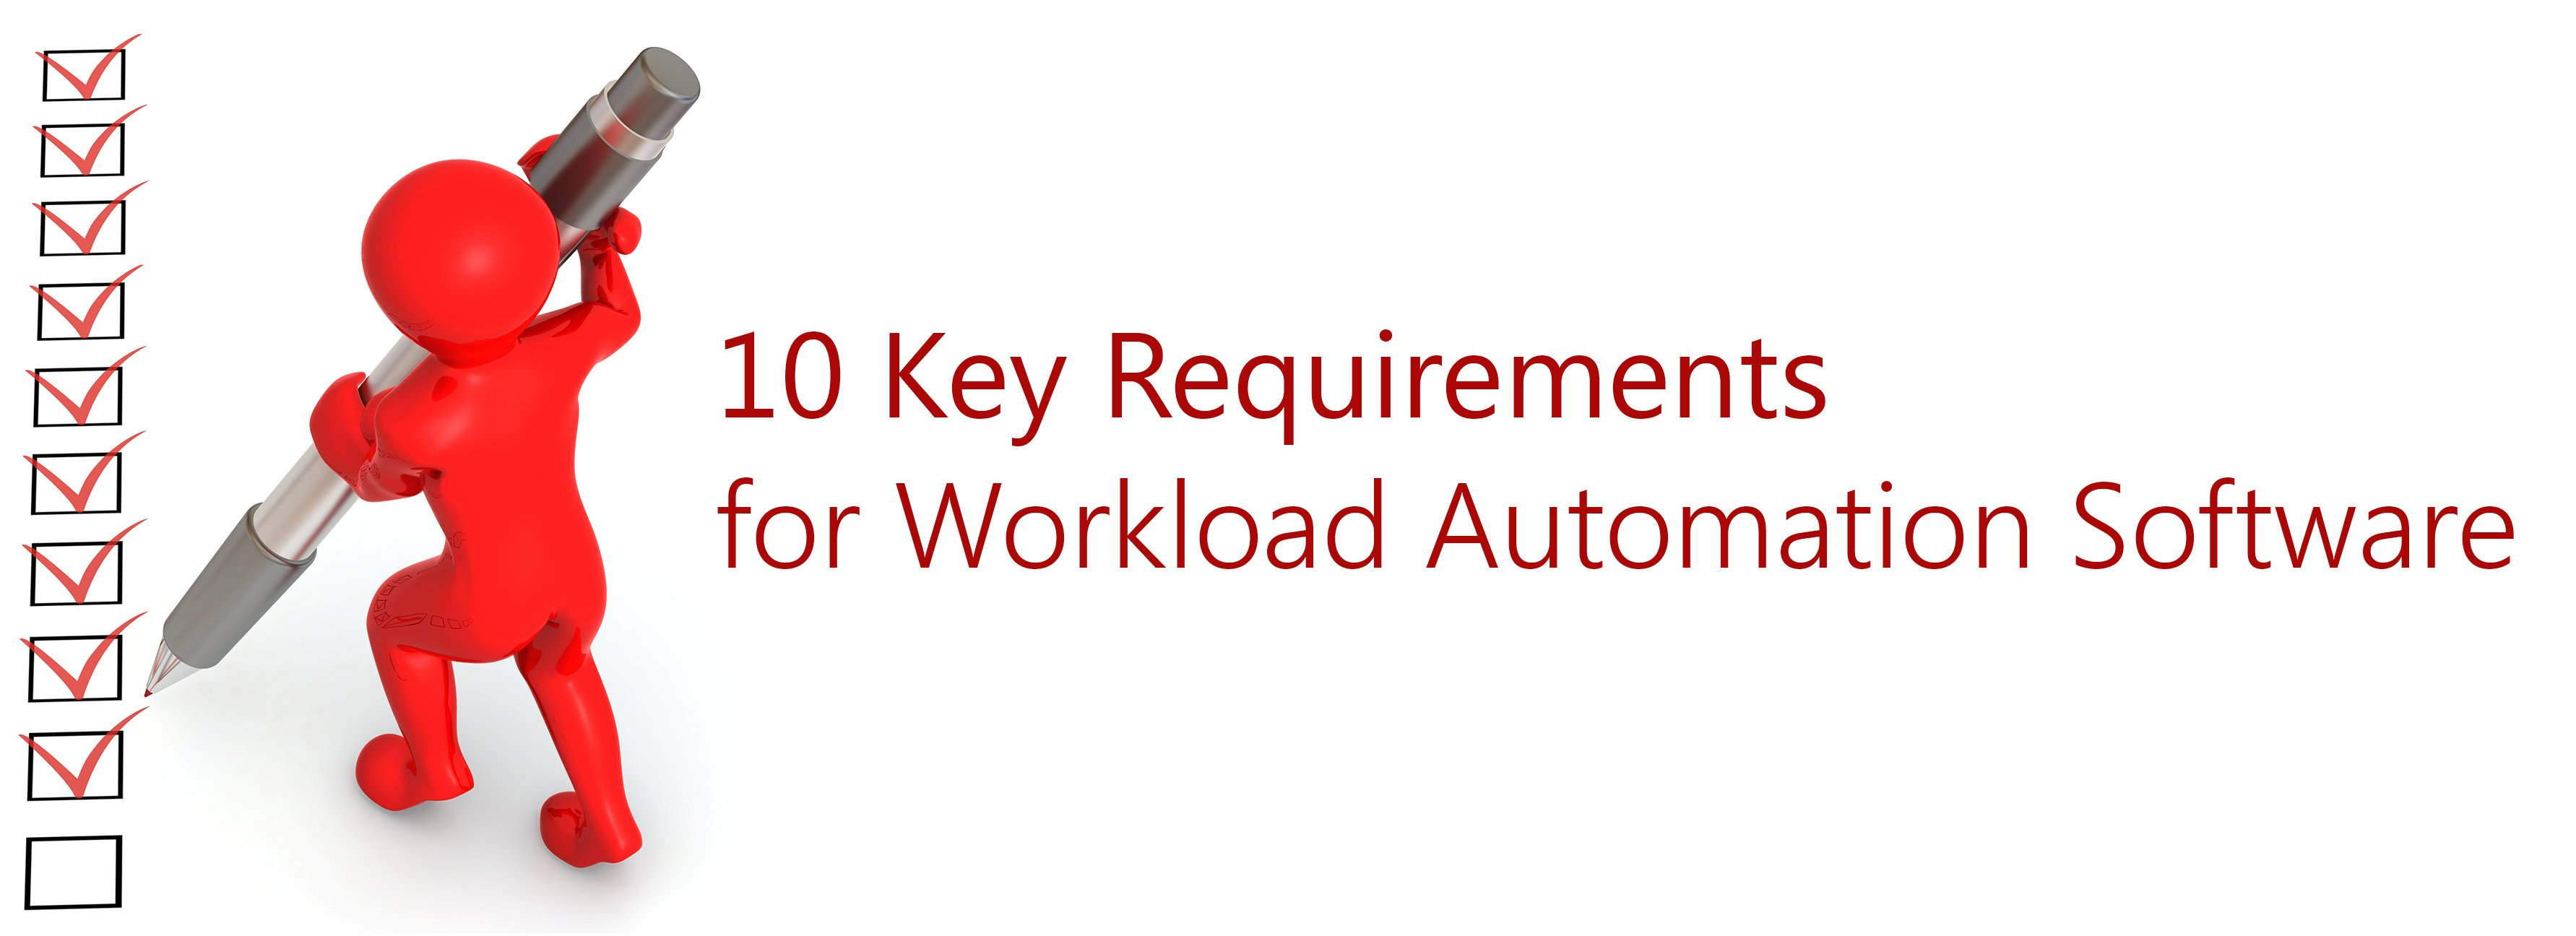 10-Key-Requirements-of-Workload-Automation-Software